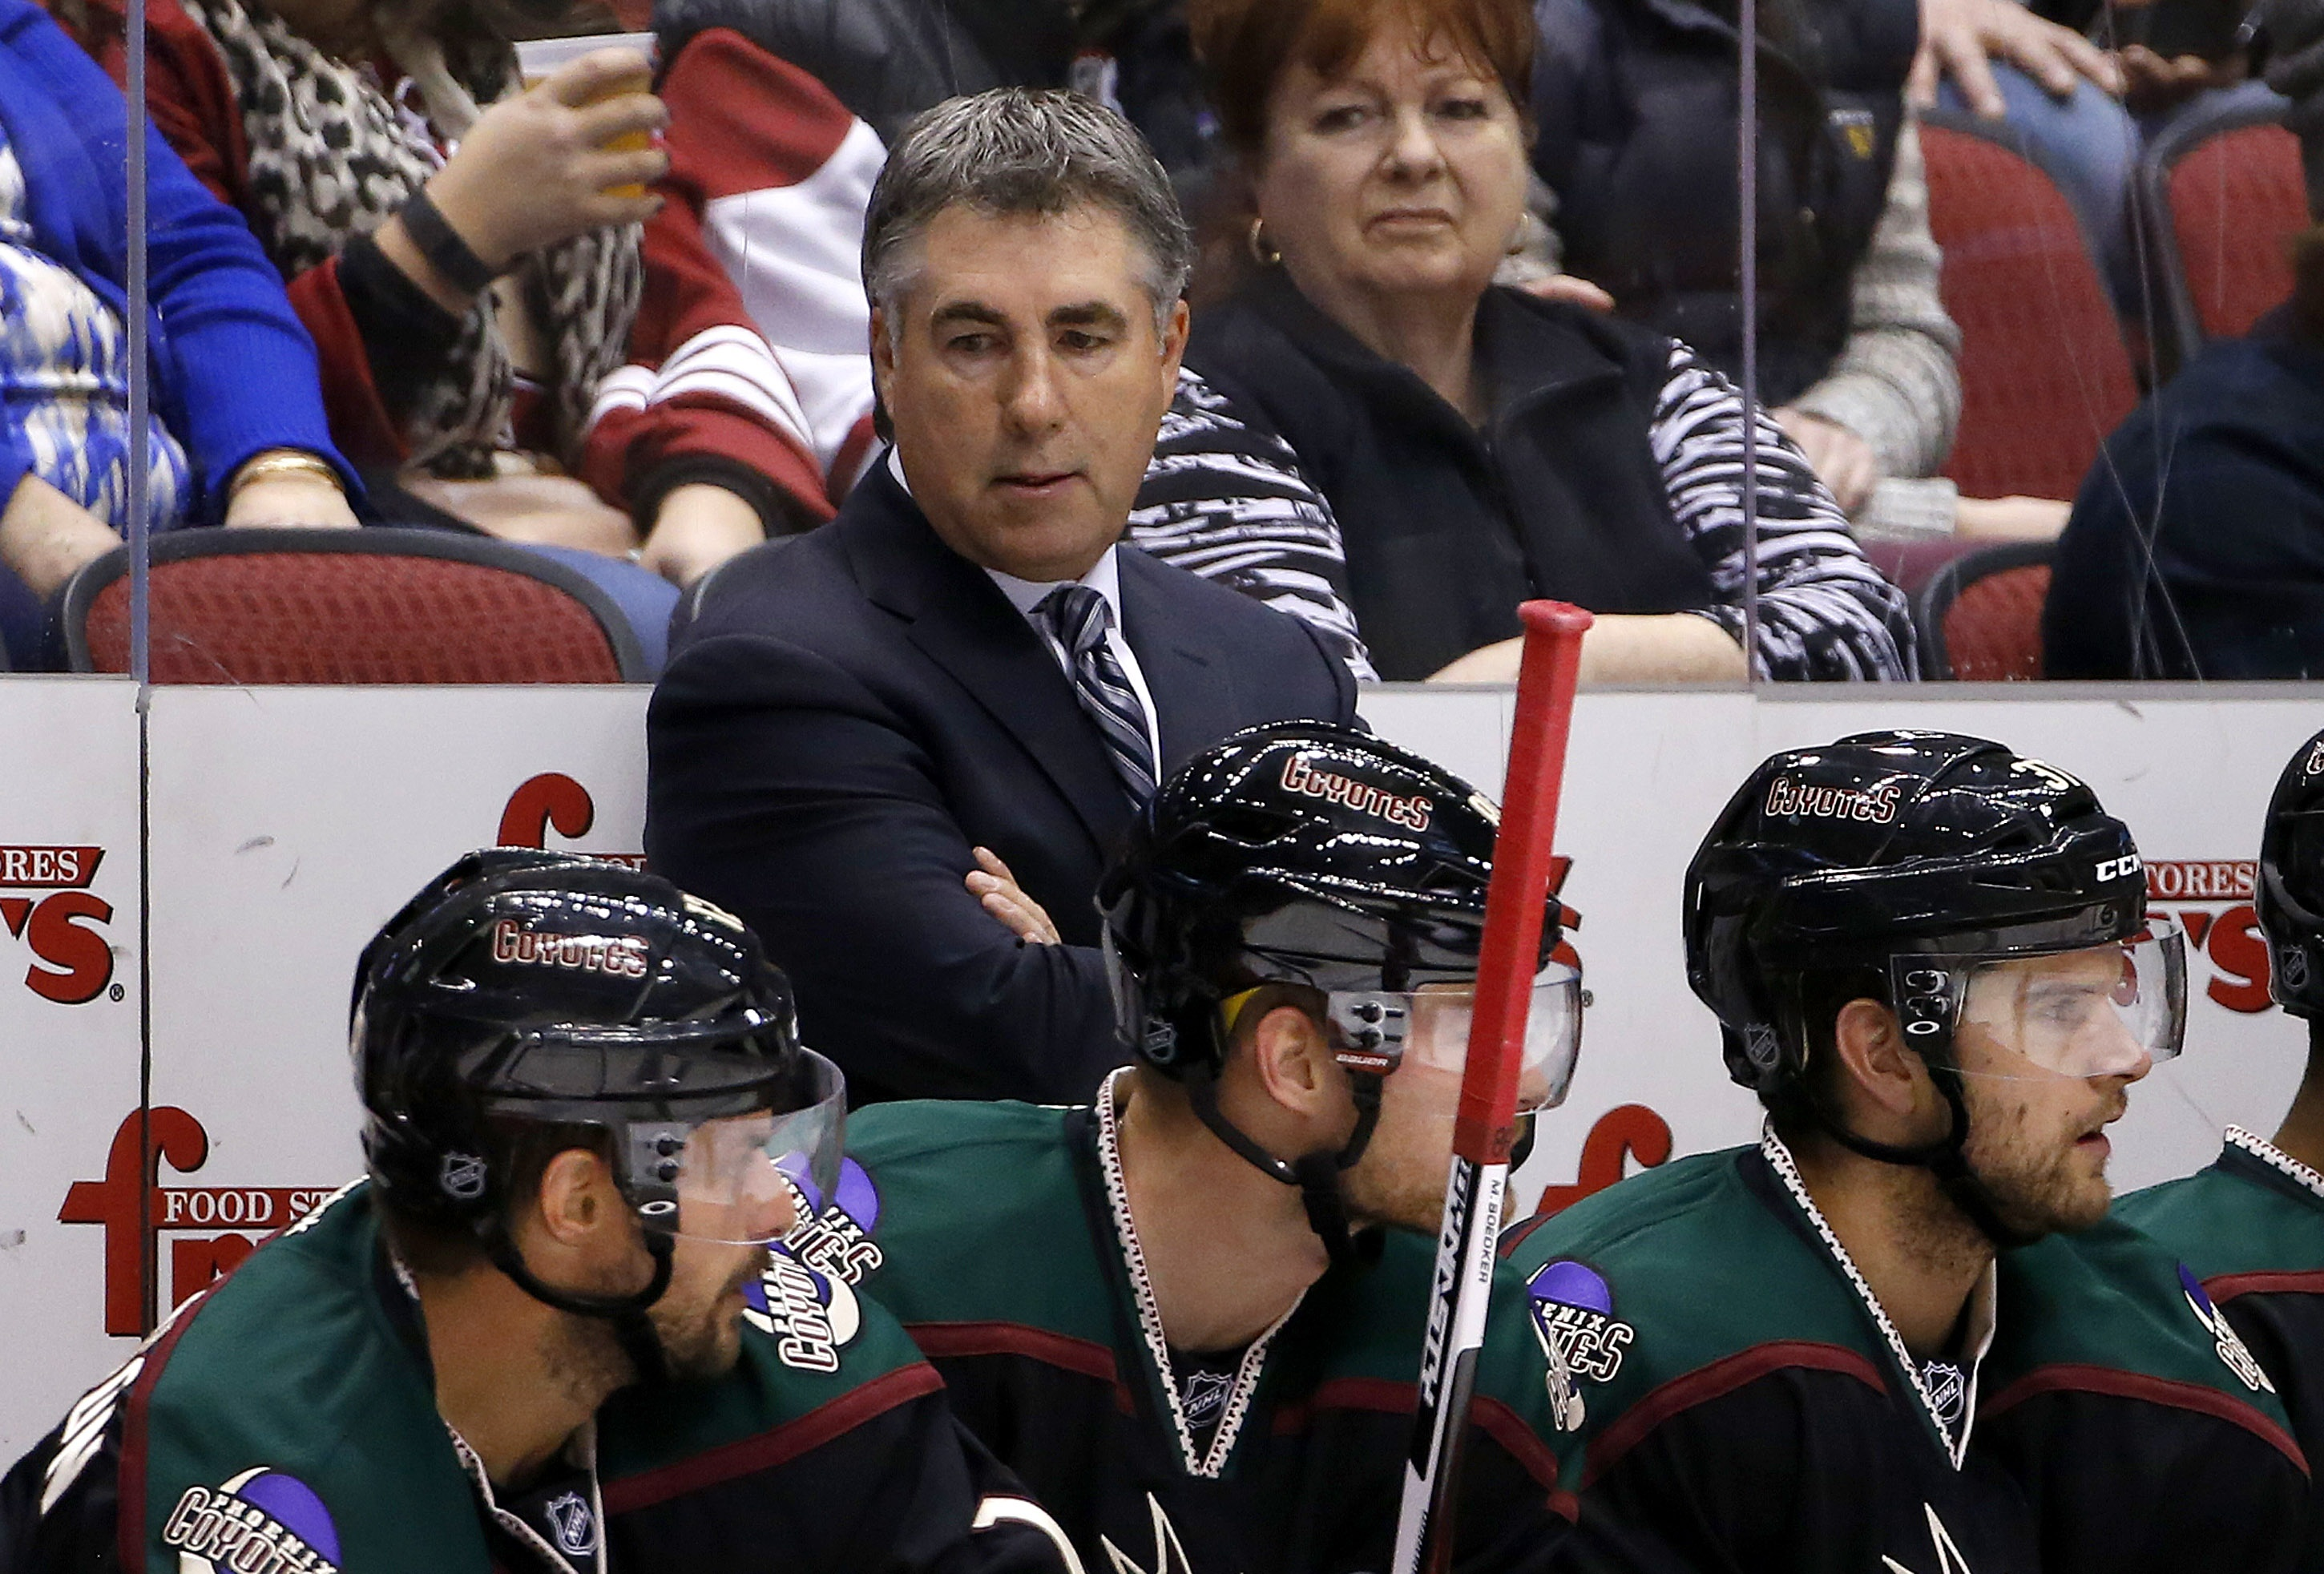 Arizona Coyotes coach Dave Tippett stands on the bench during the second period of his team's NHL hockey game against the Calgary Flames on Friday, Nov. 27, 2015, in Glendale, Ariz. The Coyotes defeated the Flames 2-1 in overtime for Tippett's 500th coach